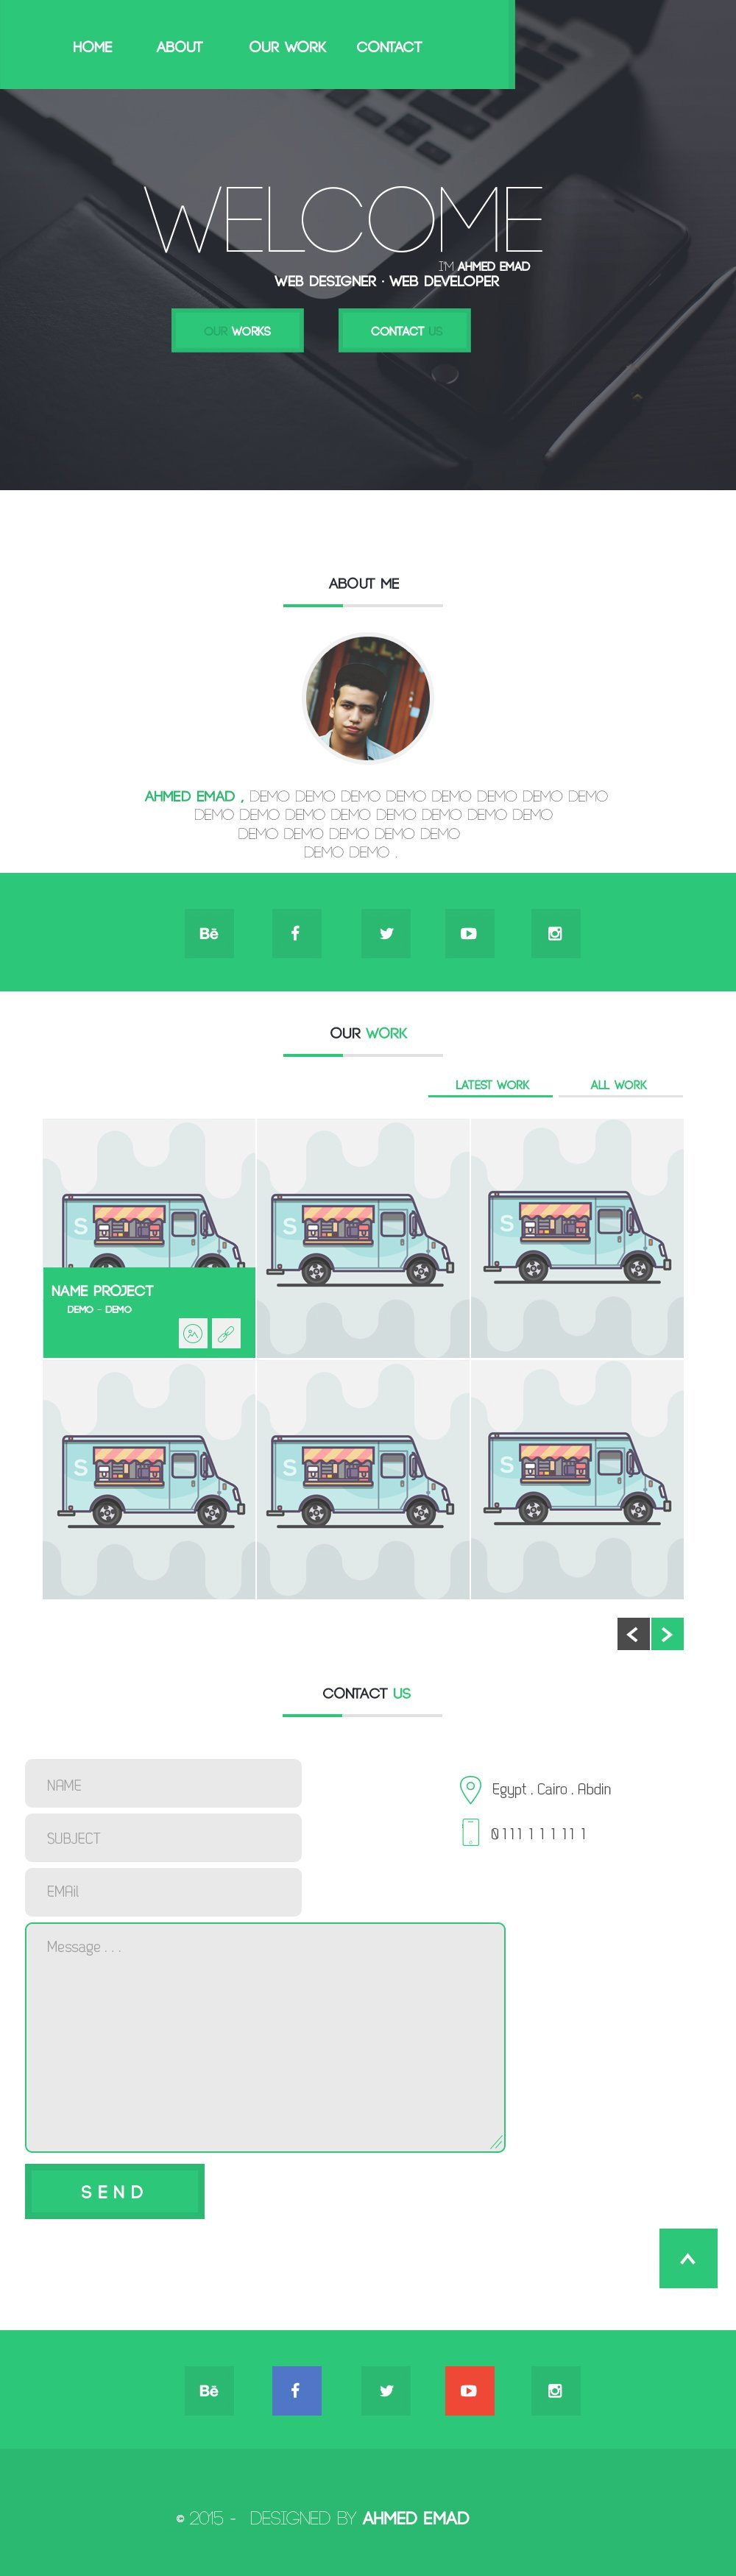 Free Flat One Page Page Template PSD